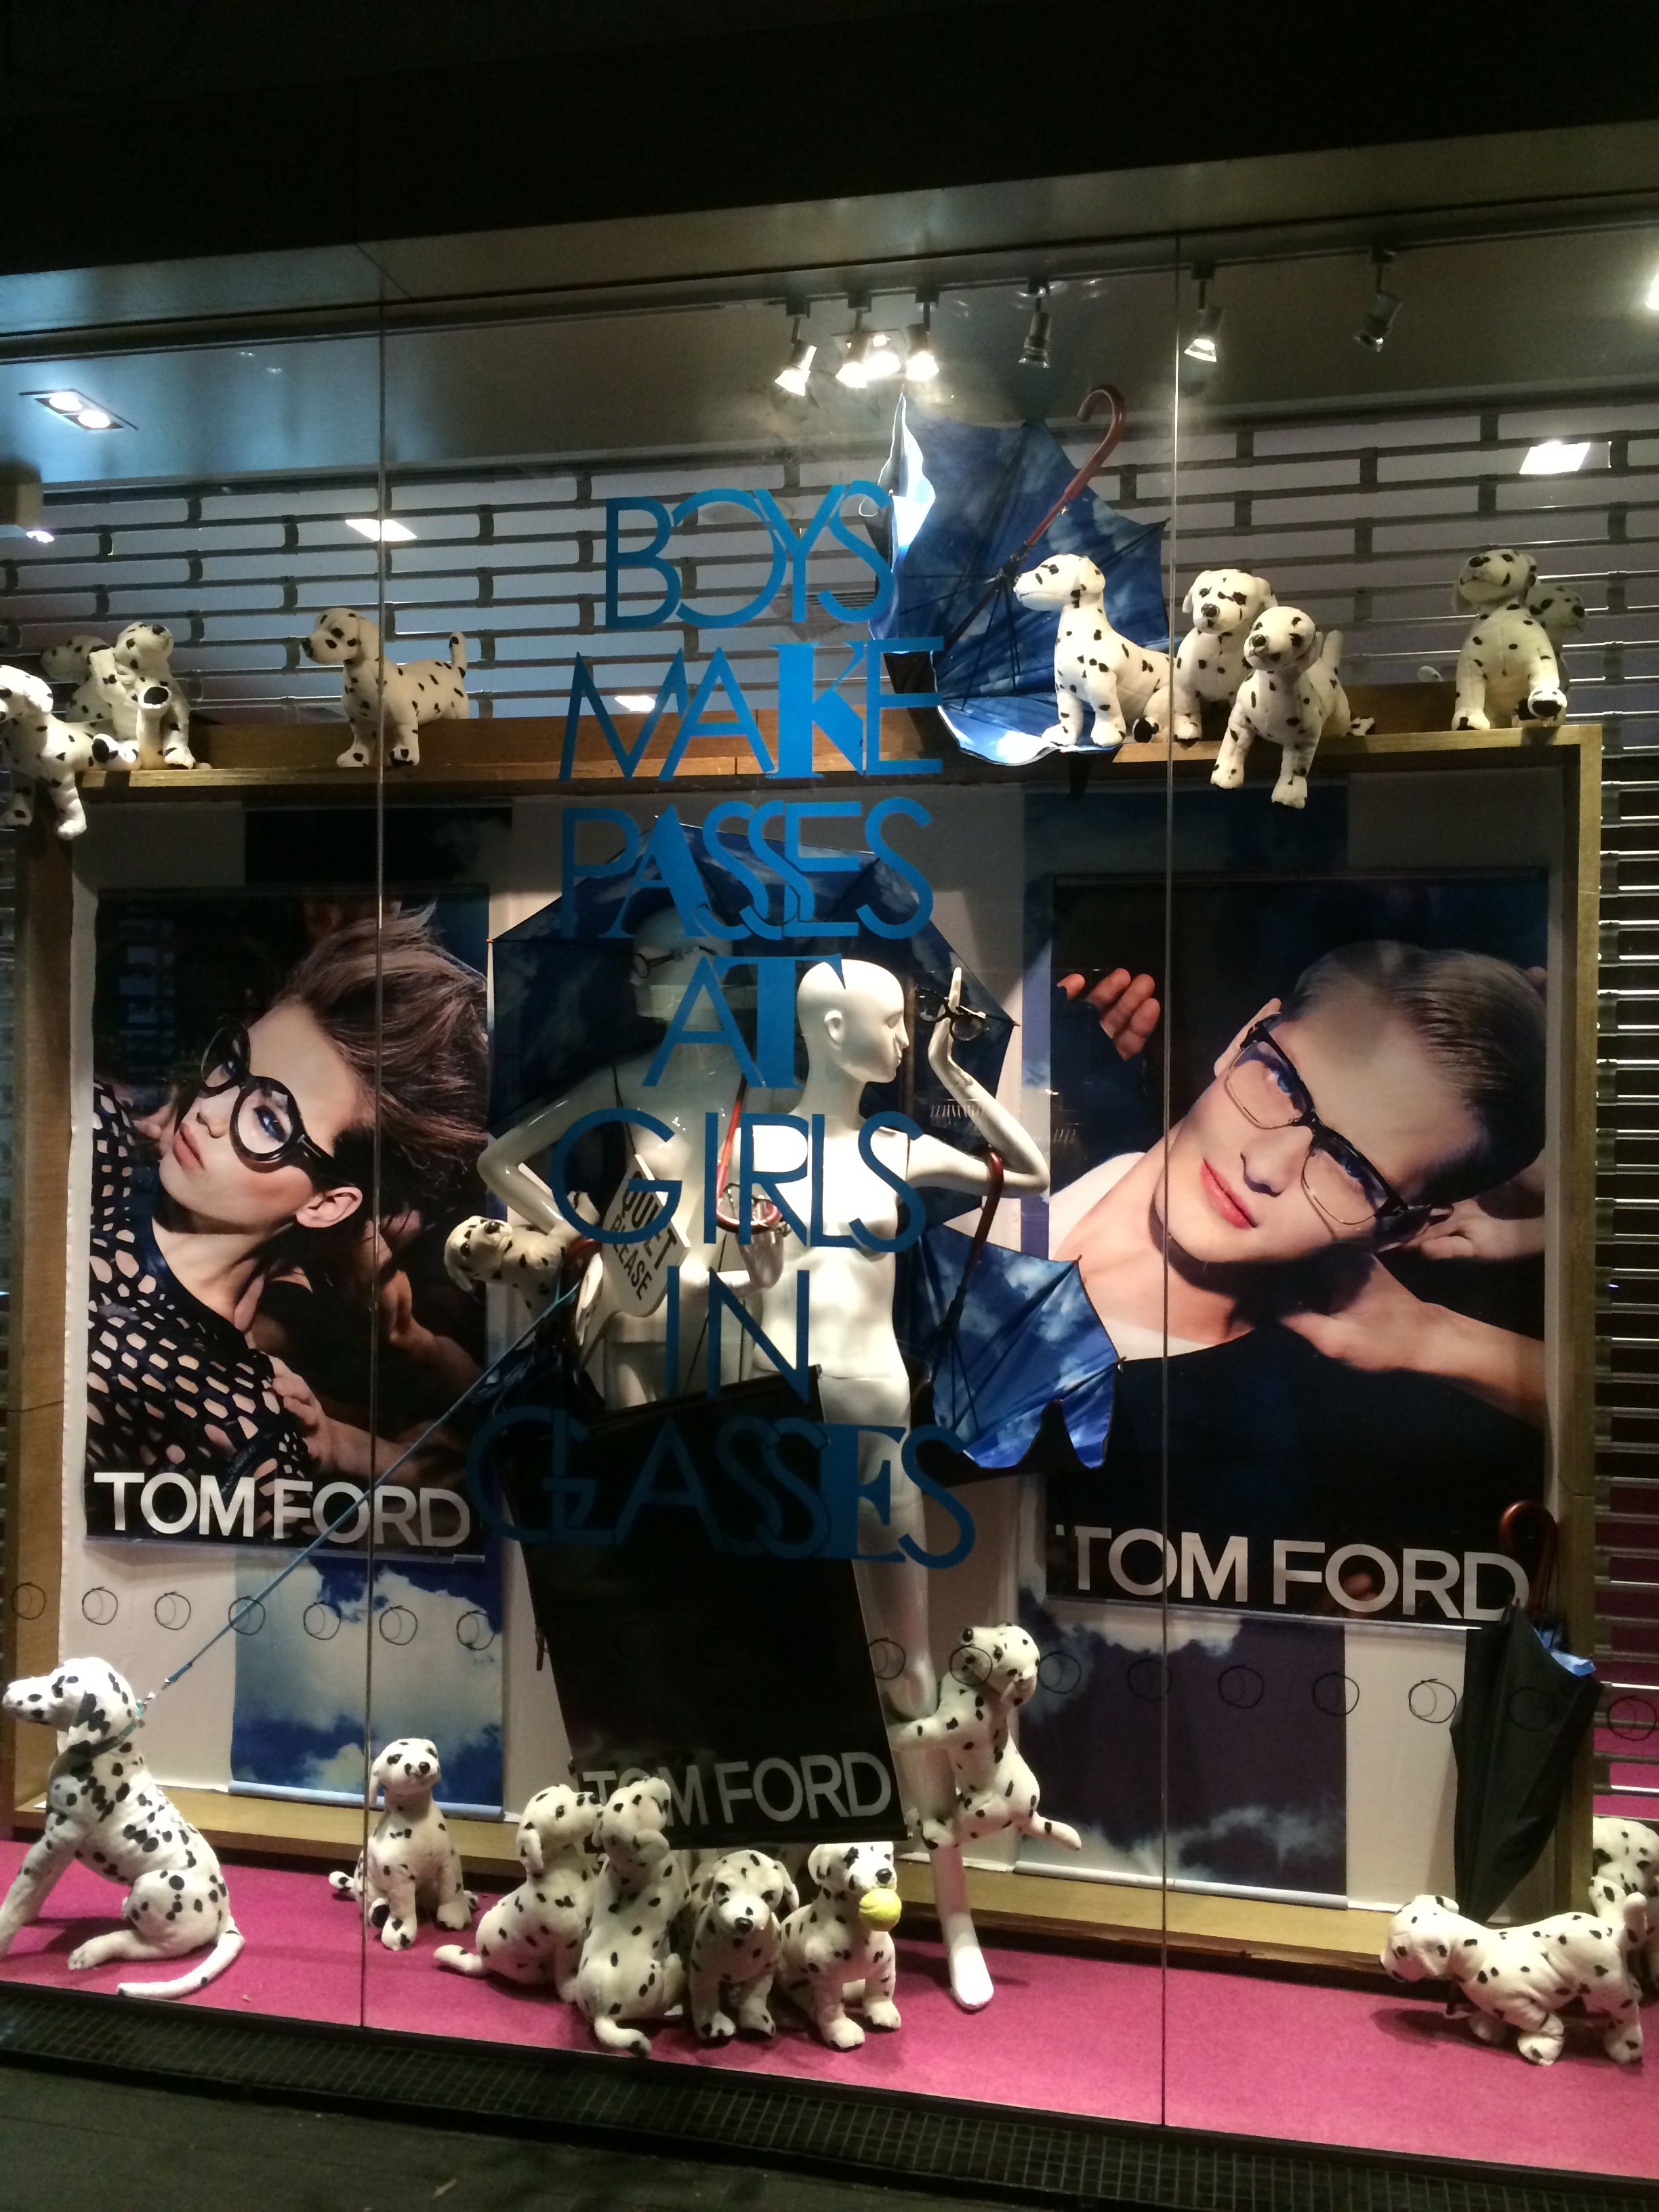 Boys Make Passes At Girls With Glasses Part1 At Occhiali Newmarket Auckland New Zealand For Tom Ford Eyewear Crea Eyewear Display Tom Ford Tom Ford Eyewear